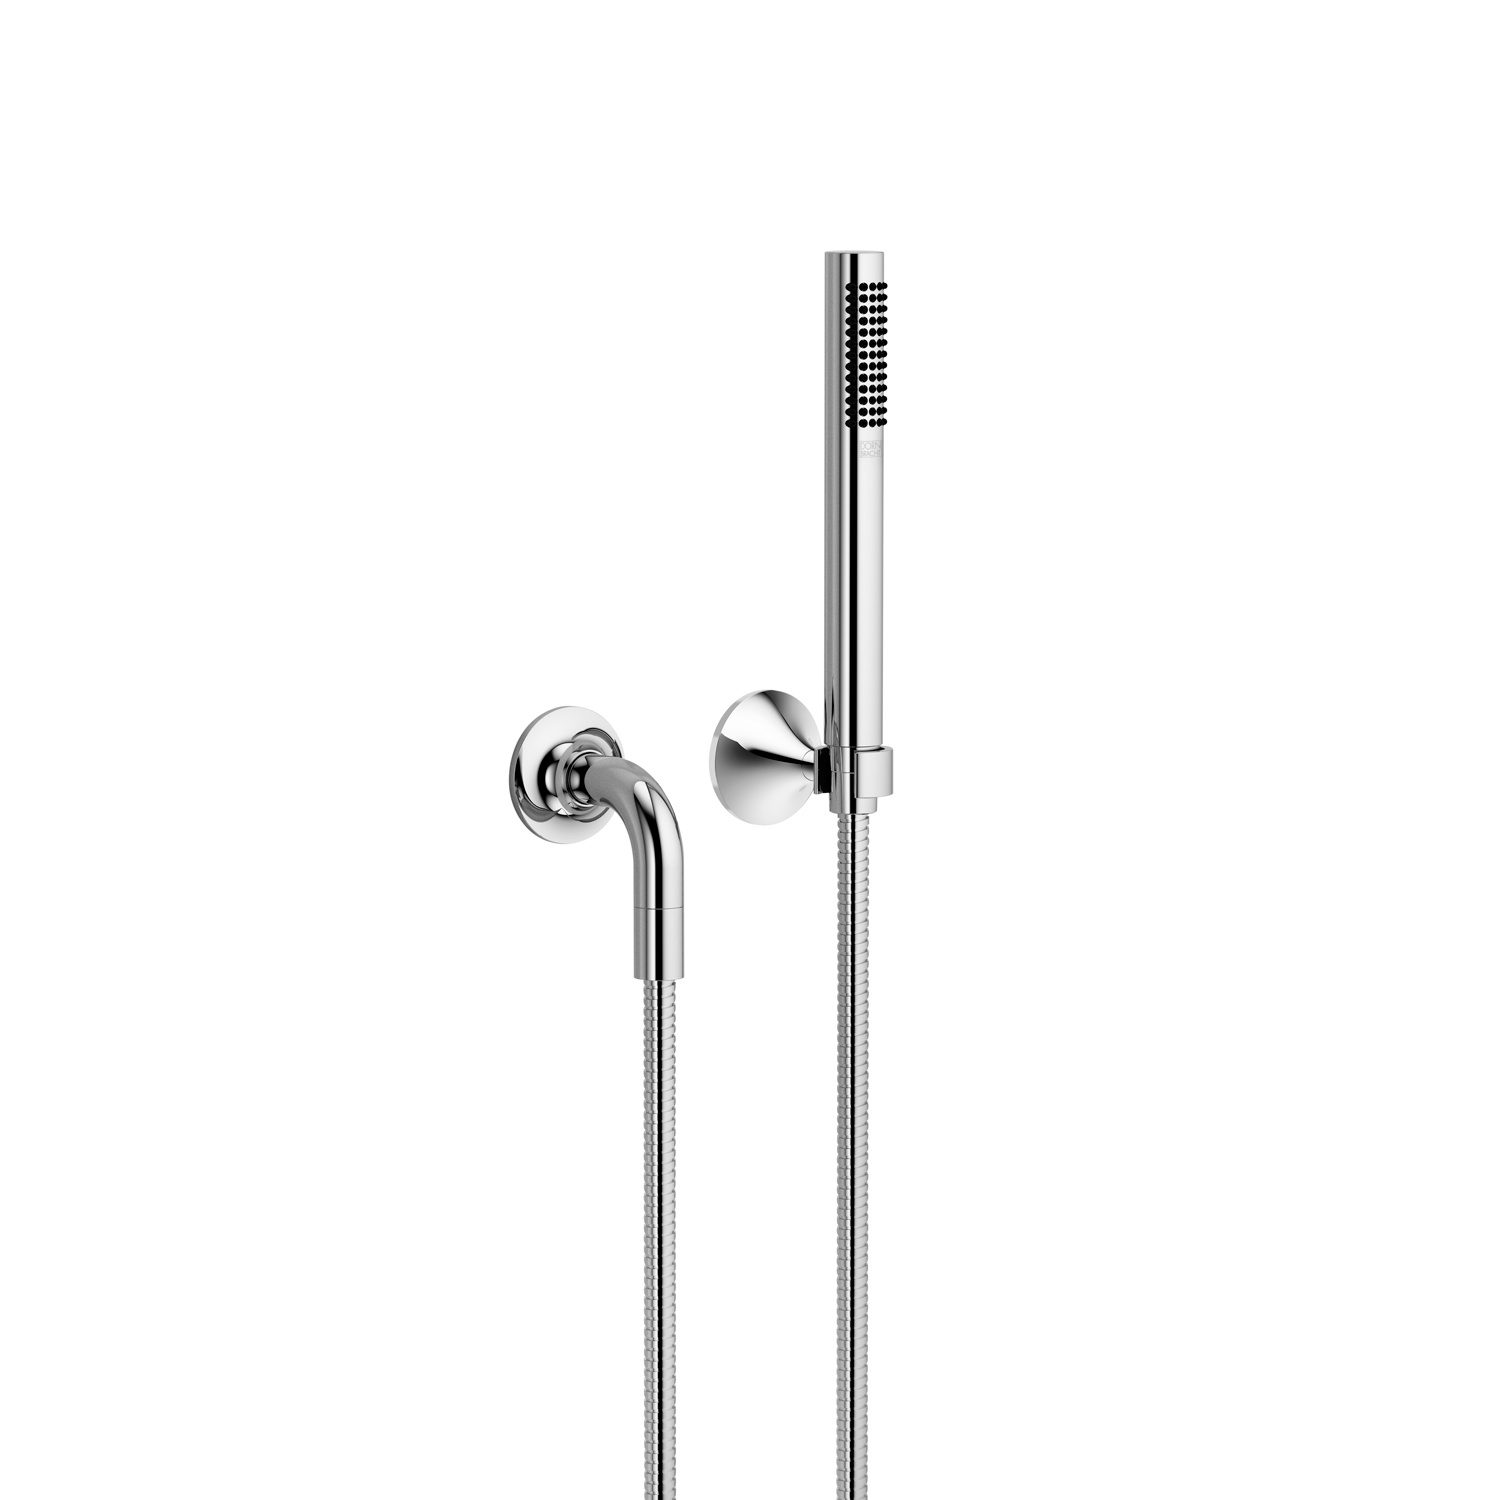 Hand shower set with individual rosettes - polished chrome - 27 808 809-00